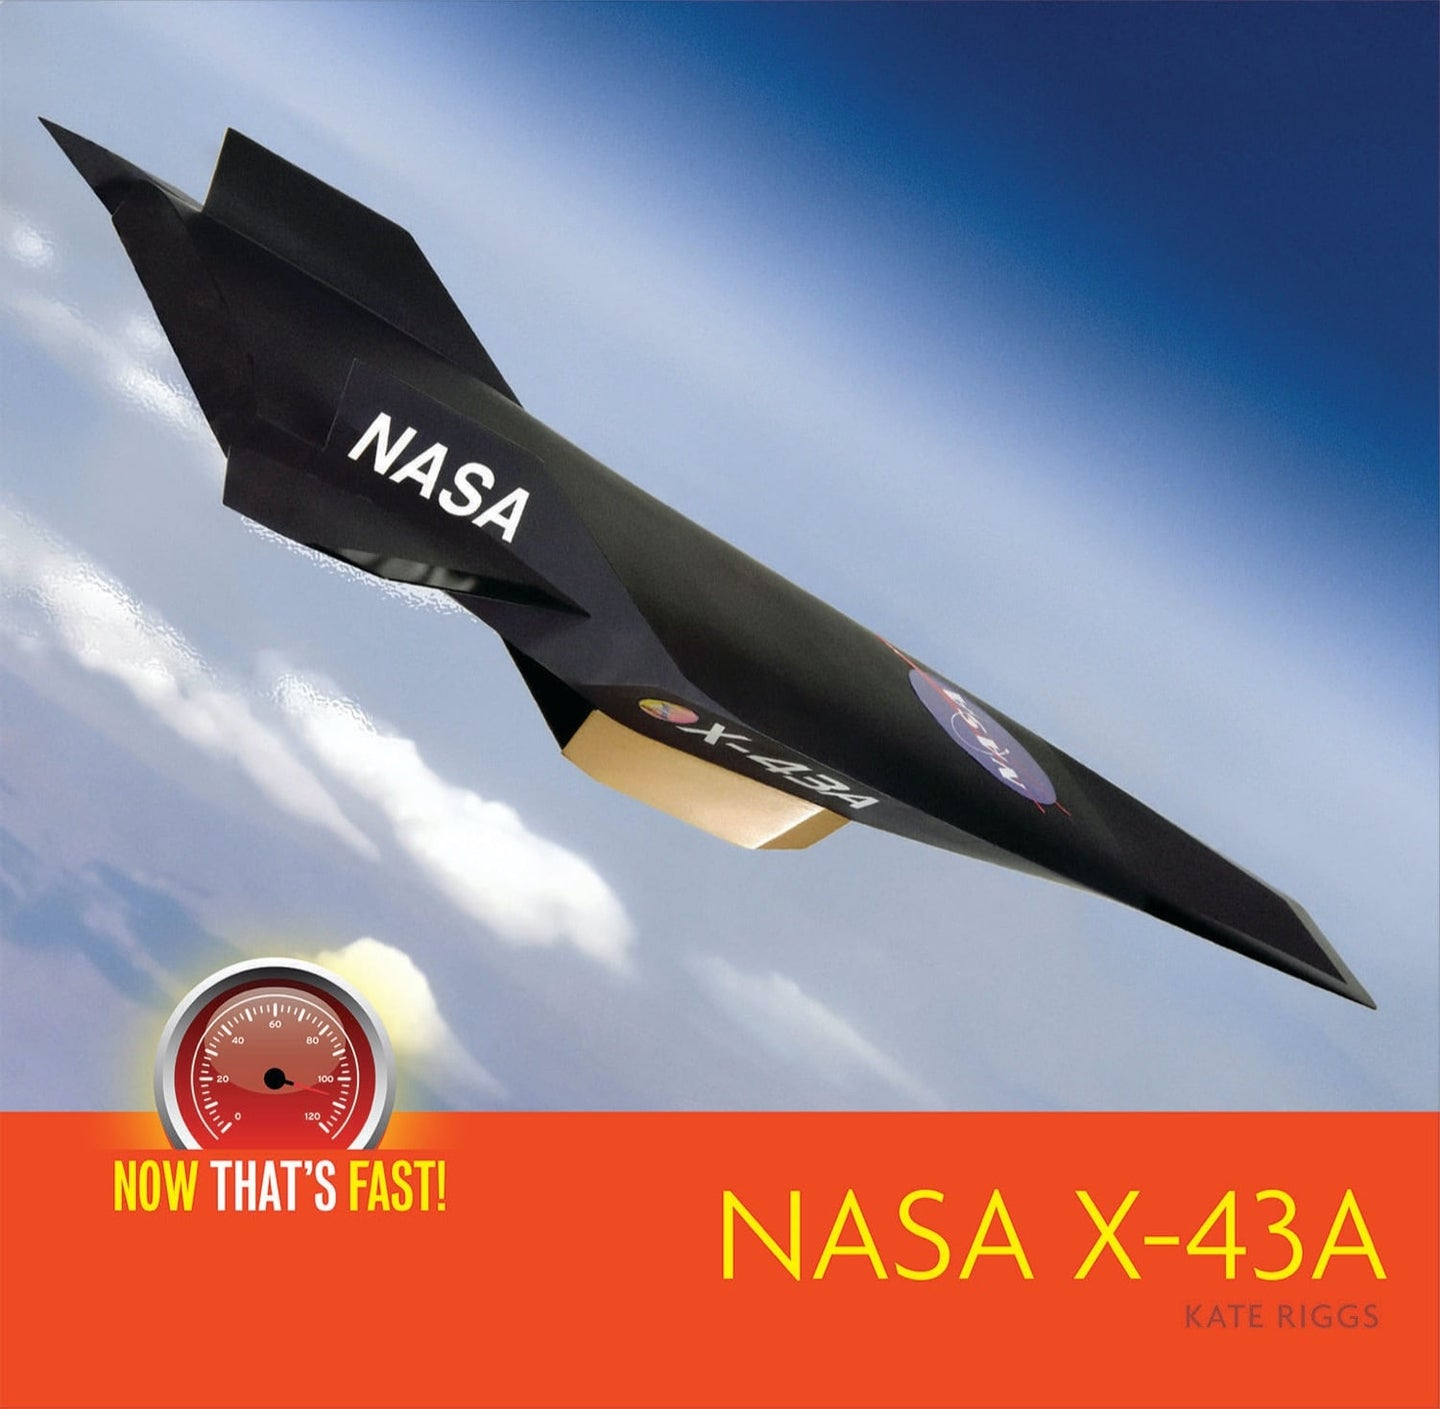 Now That's Fast!: NASA X-43A